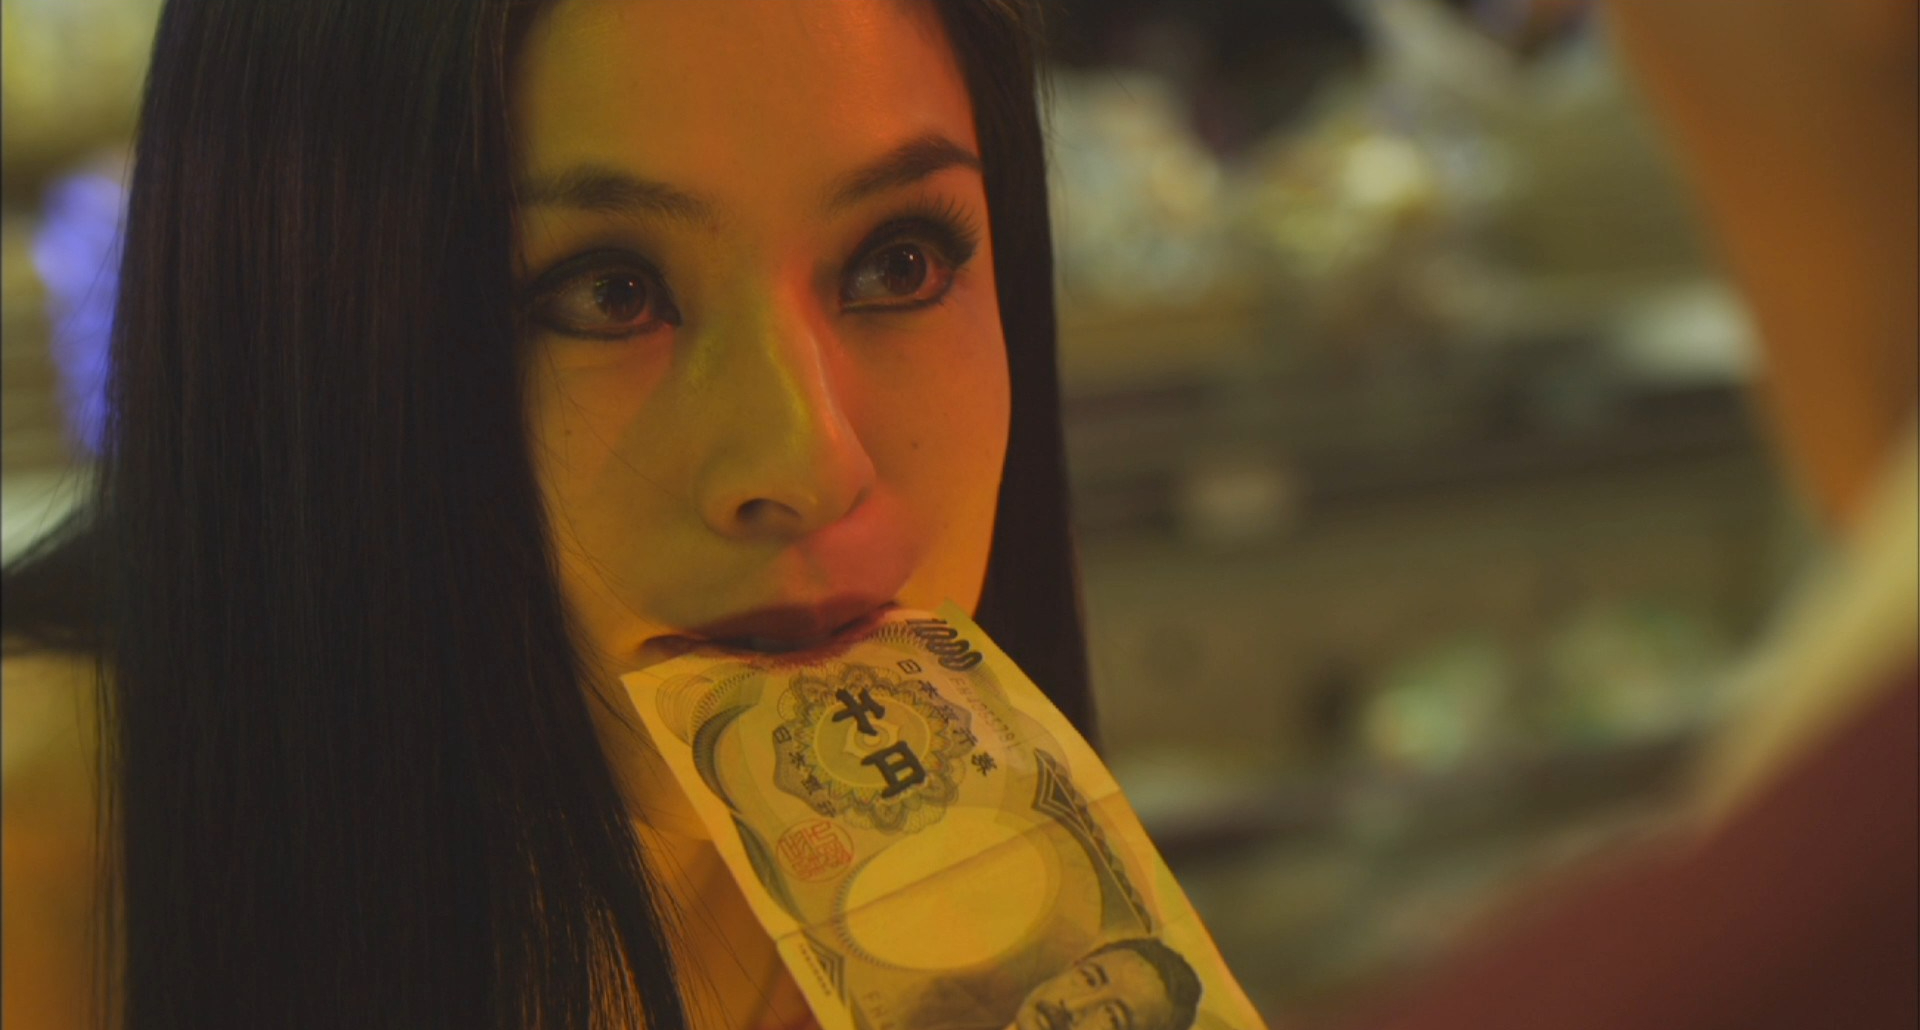 Guilty of Romance (2011) by Sion Sono